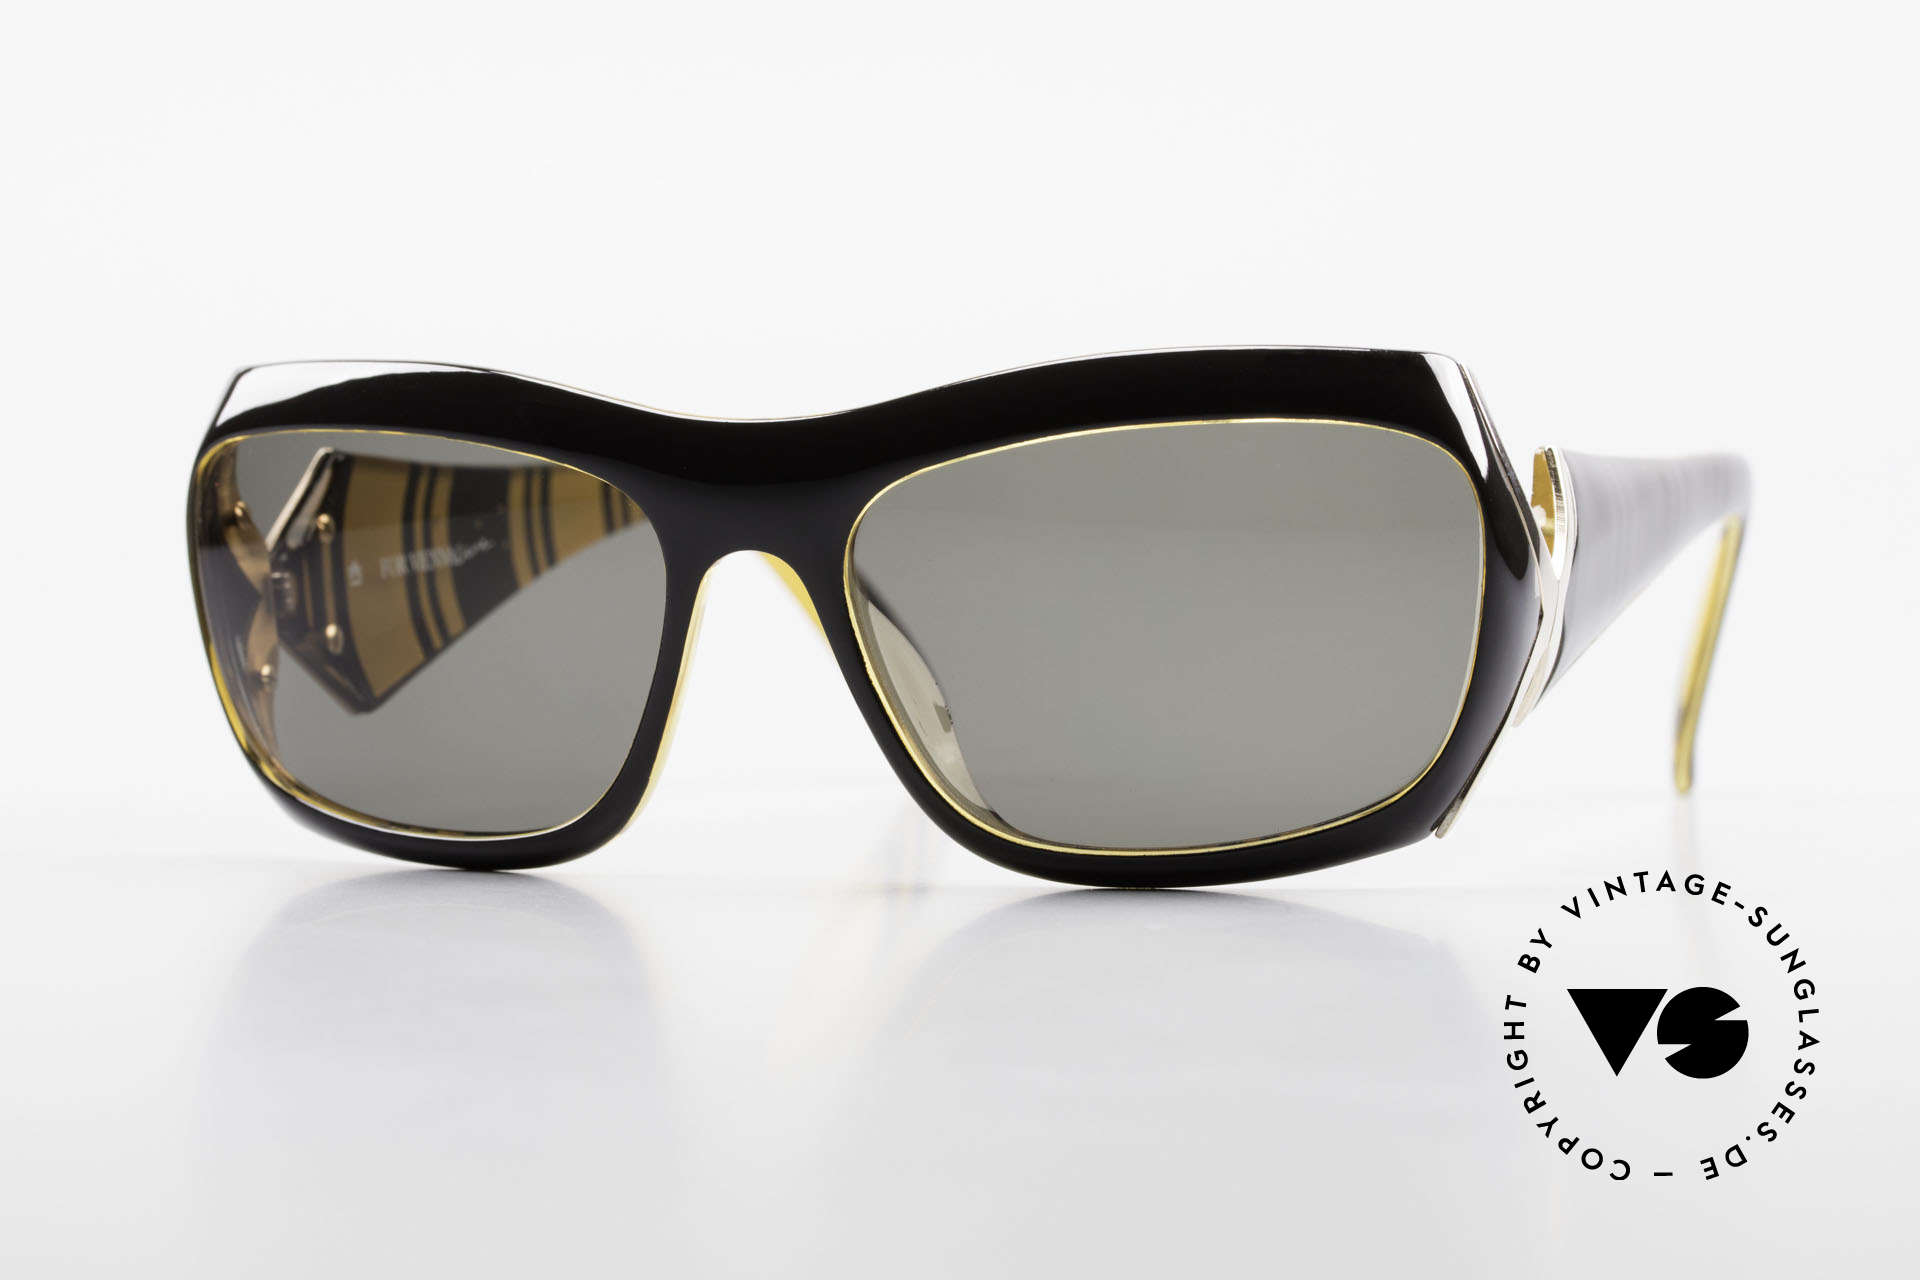 Paloma Picasso 3700 90's Ladies Designer Shades, rare ladies sunglasses by Paloma Picasso from '90, Made for Women